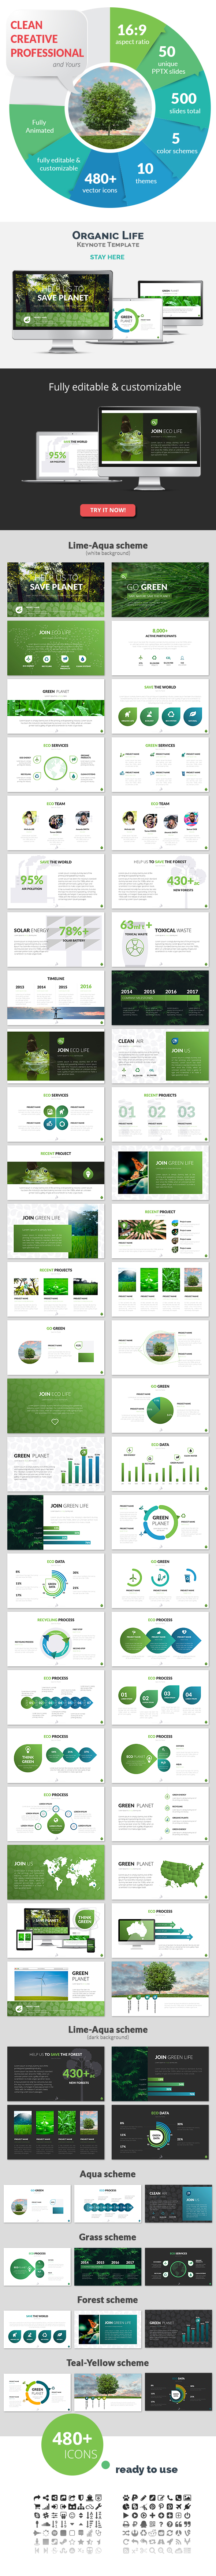 Organic Life Keynote Presentation Template - Nature Keynote Templates